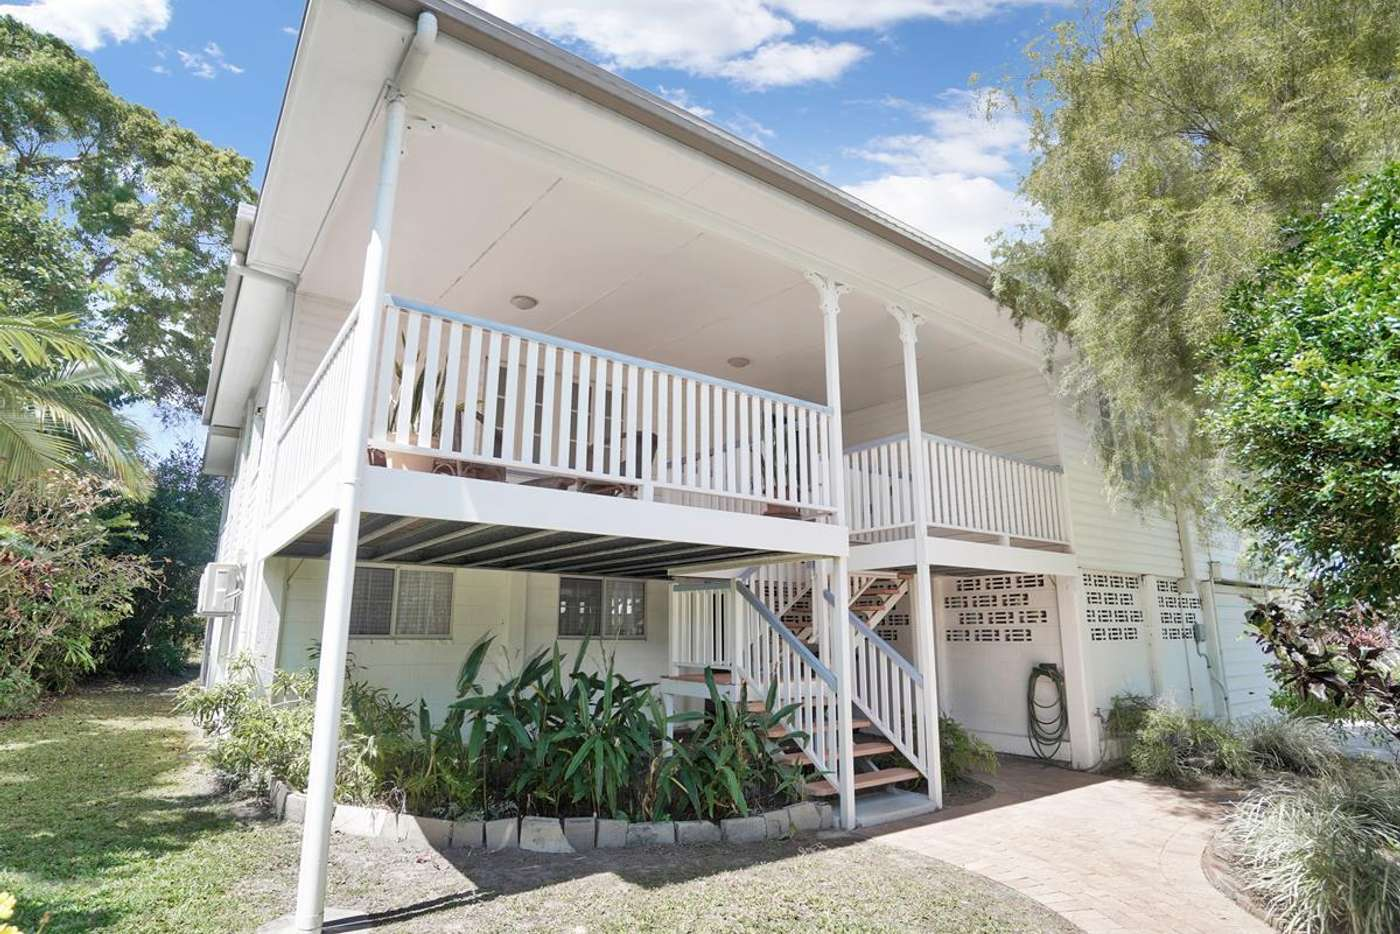 Main view of Homely house listing, 14 Crowther Street, Whitfield QLD 4870